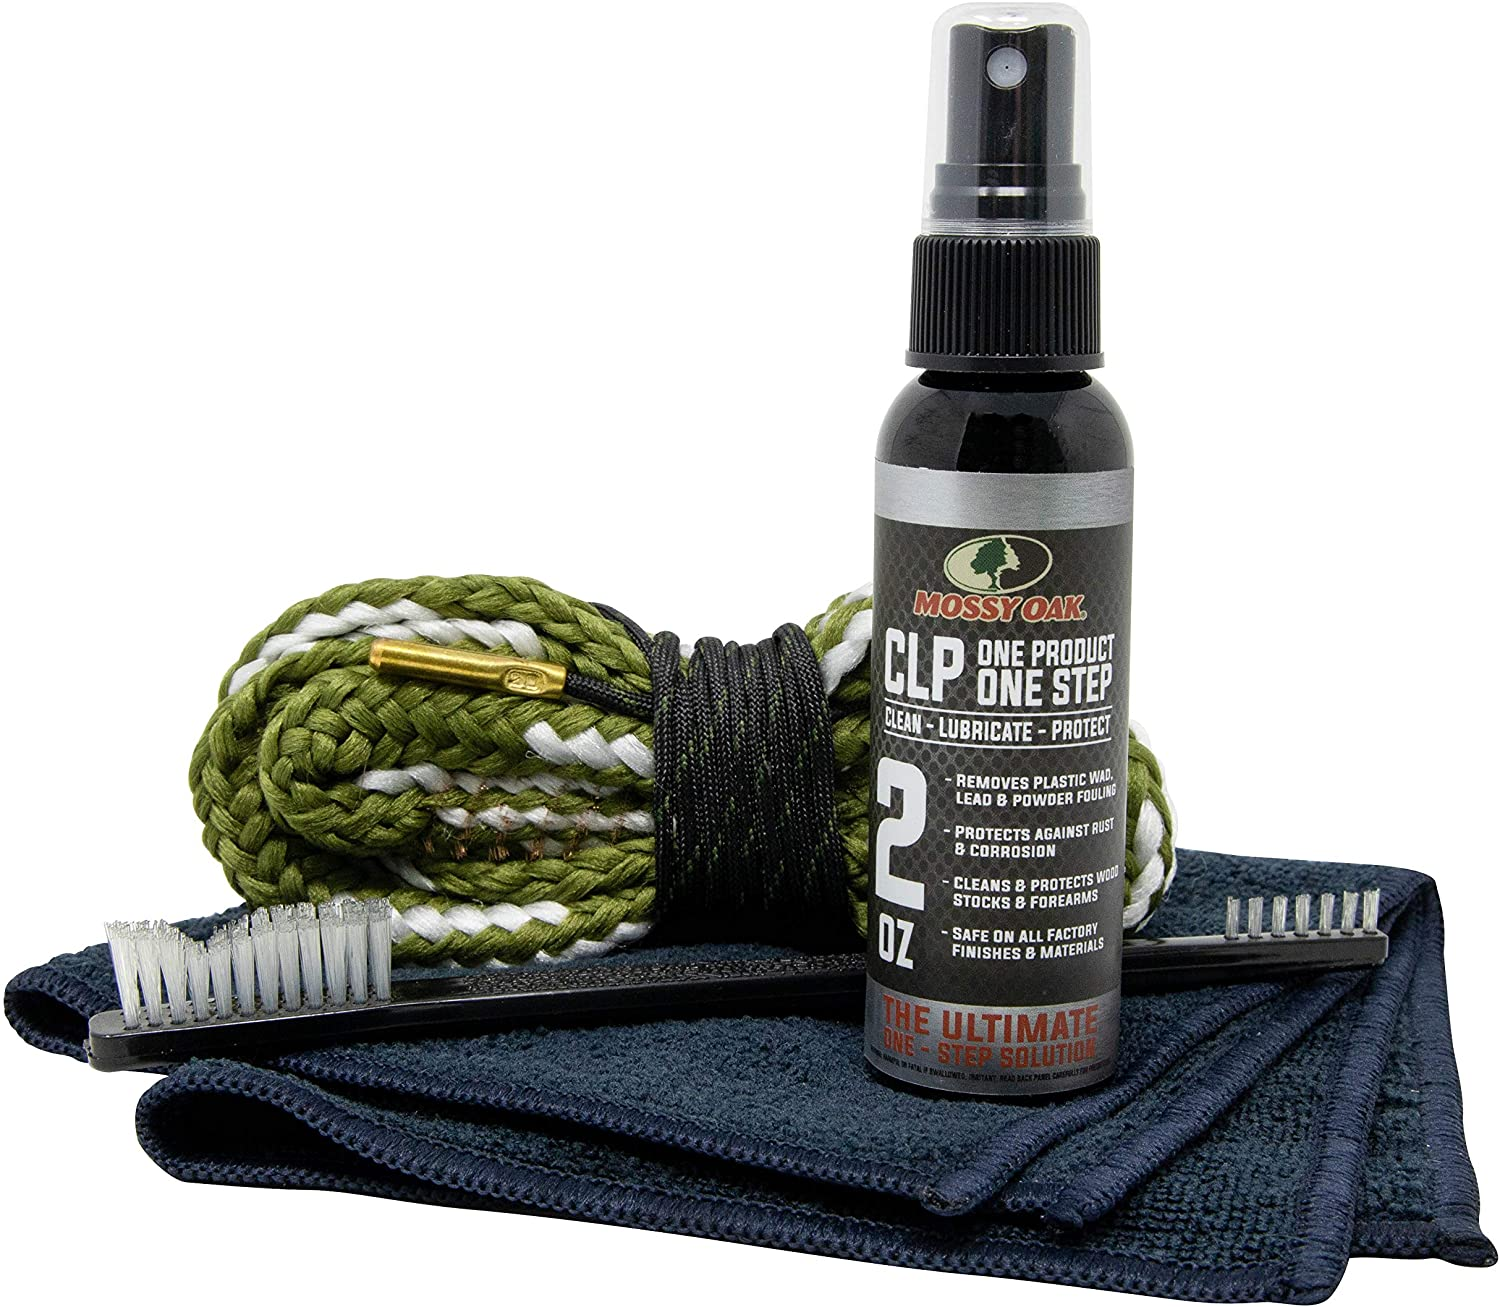 Mossy Oak Shotgun Combo Kit | Cleaner, Lubricant & Bore Brush | All-in-One | Clean, Lubricate, Protect | Rust Preventative Cleaning Kit | CLP, Bore Snake, Nylon Brush & Microfiber Towel